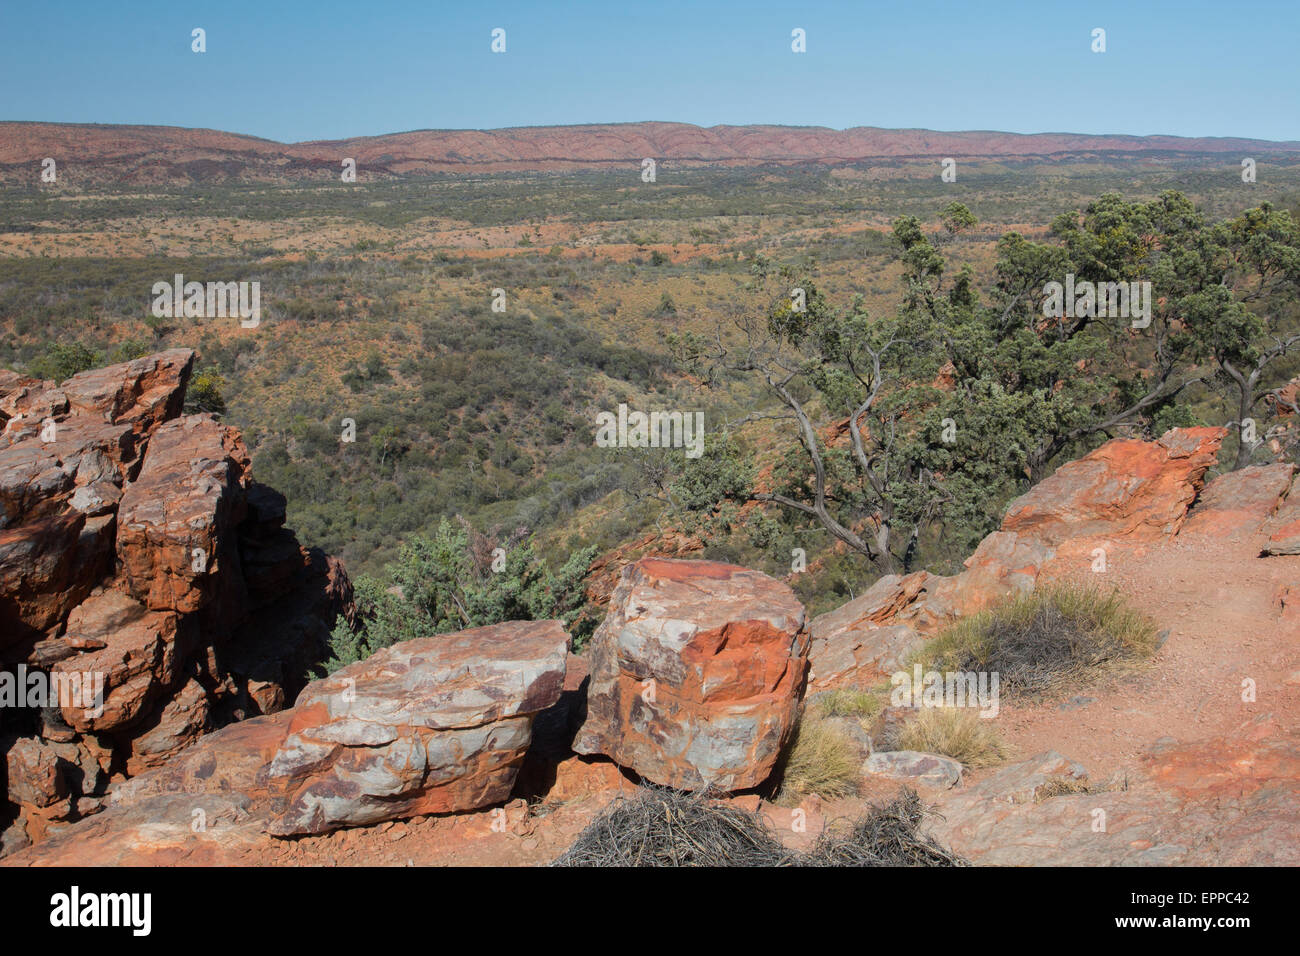 The MacDonnell Ranges from the top of Serpentine Gorge, Northern Territory, Australia - Stock Image